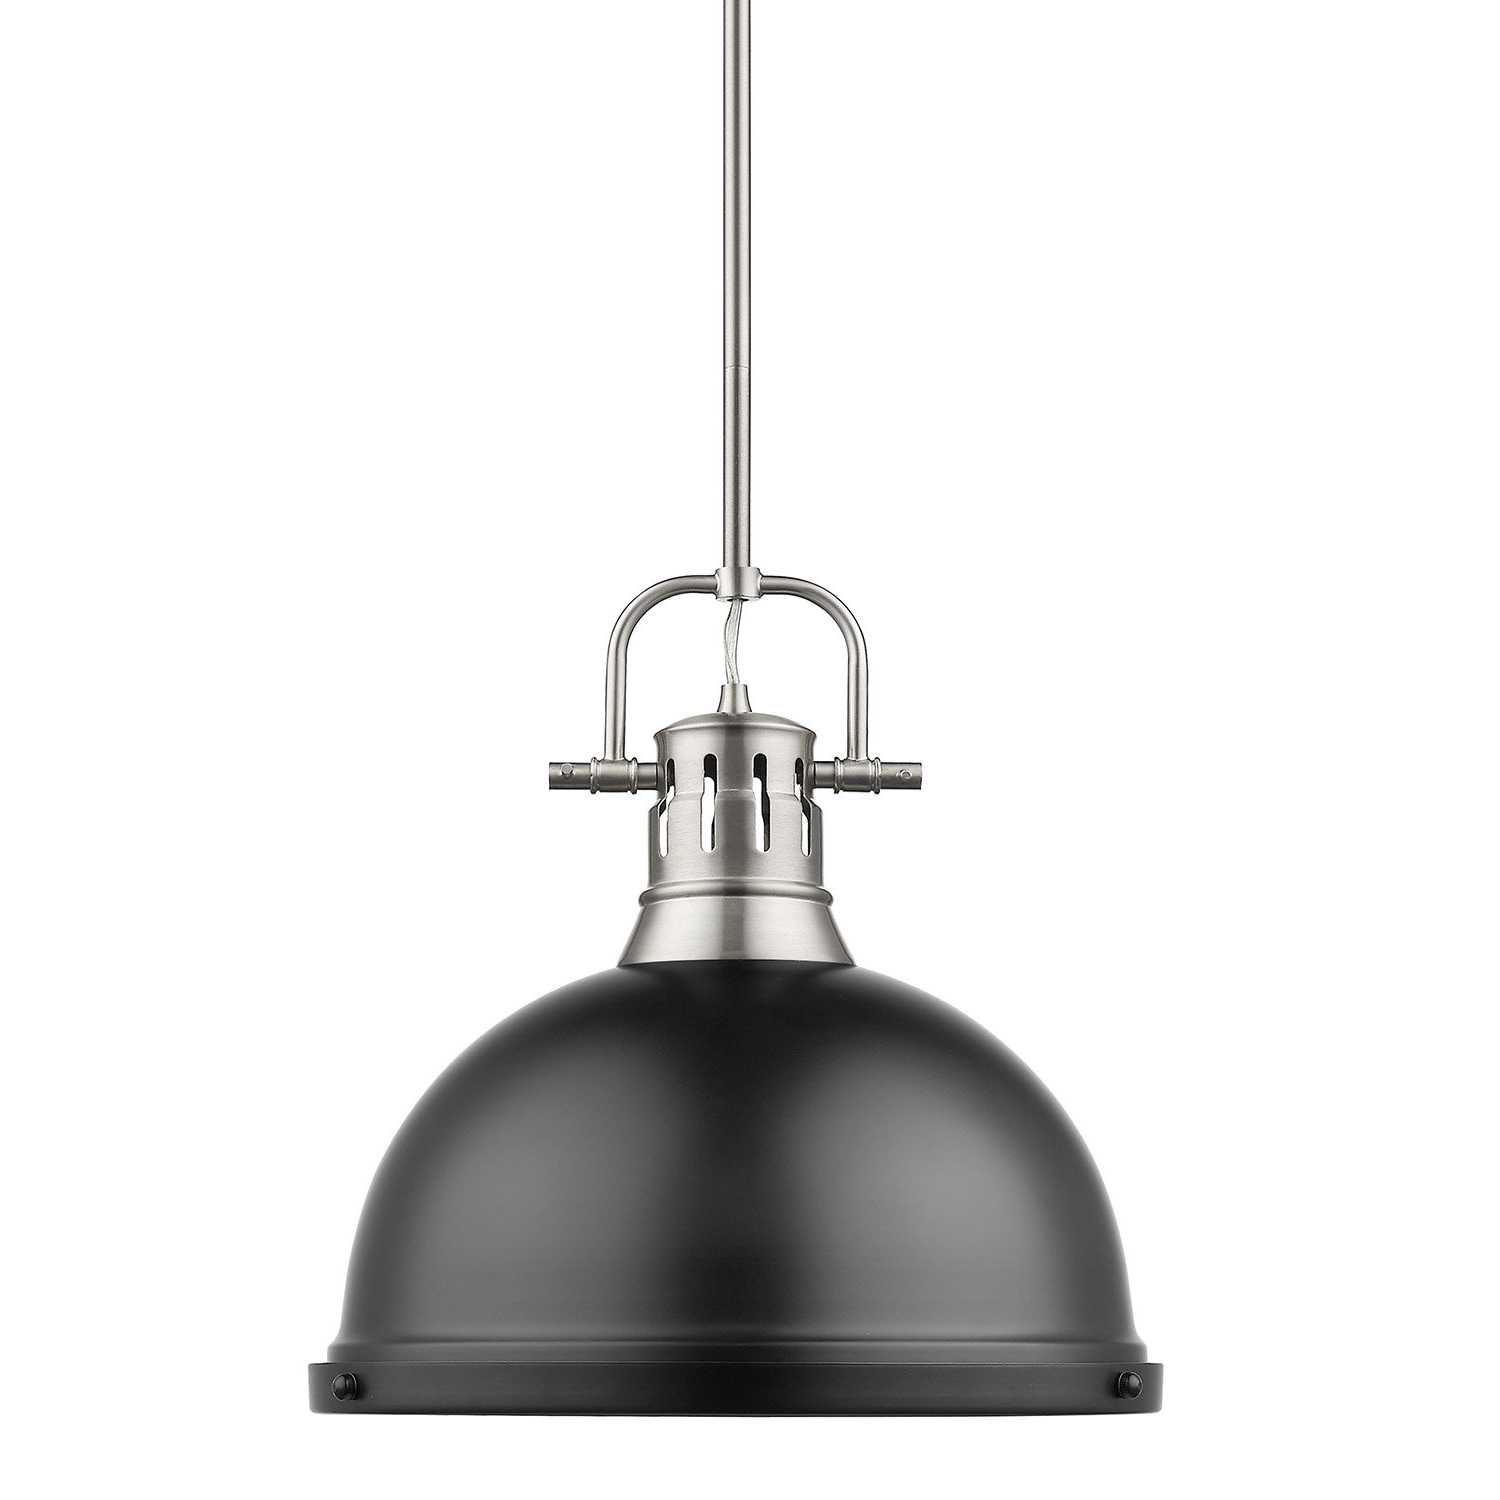 Knoxville 1 Light Single Teardrop Pendants In Well Liked Bodalla 1 Light Single Dome Pendant (View 8 of 20)